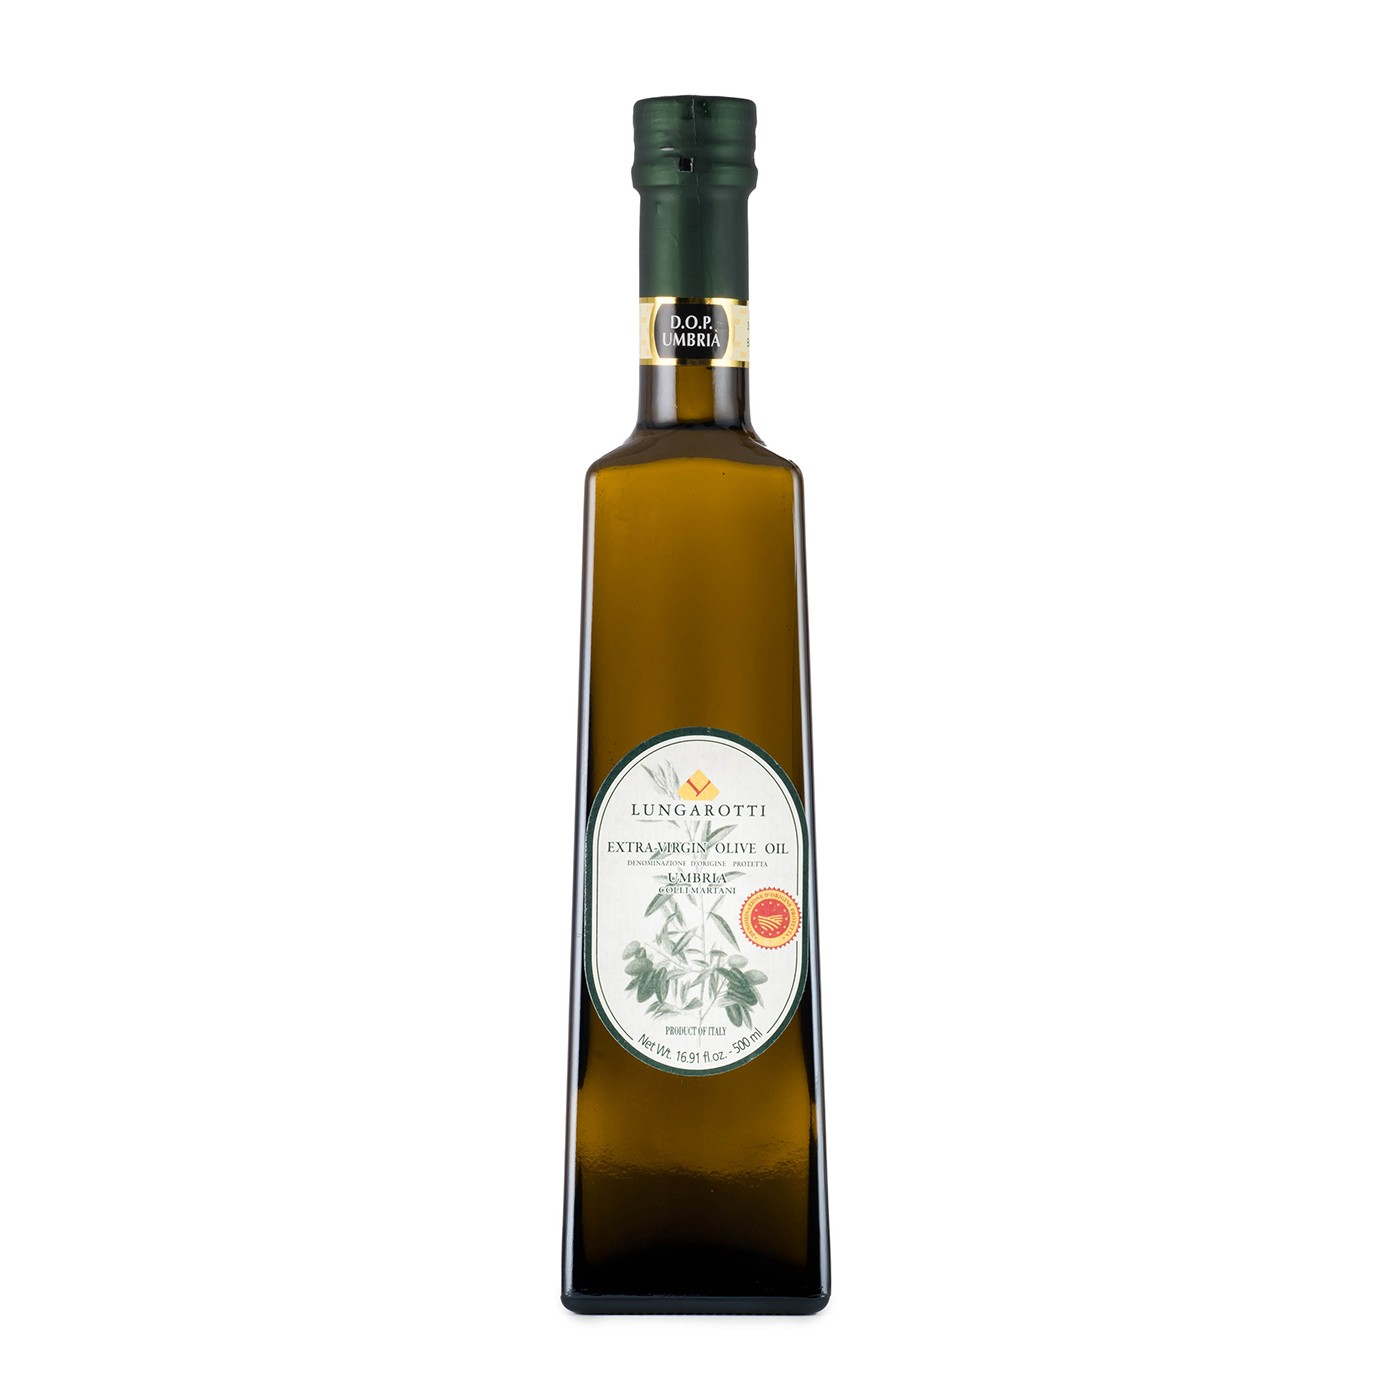 Umbria Collimartani Extra Virgin Olive Oil 16.9 fl oz